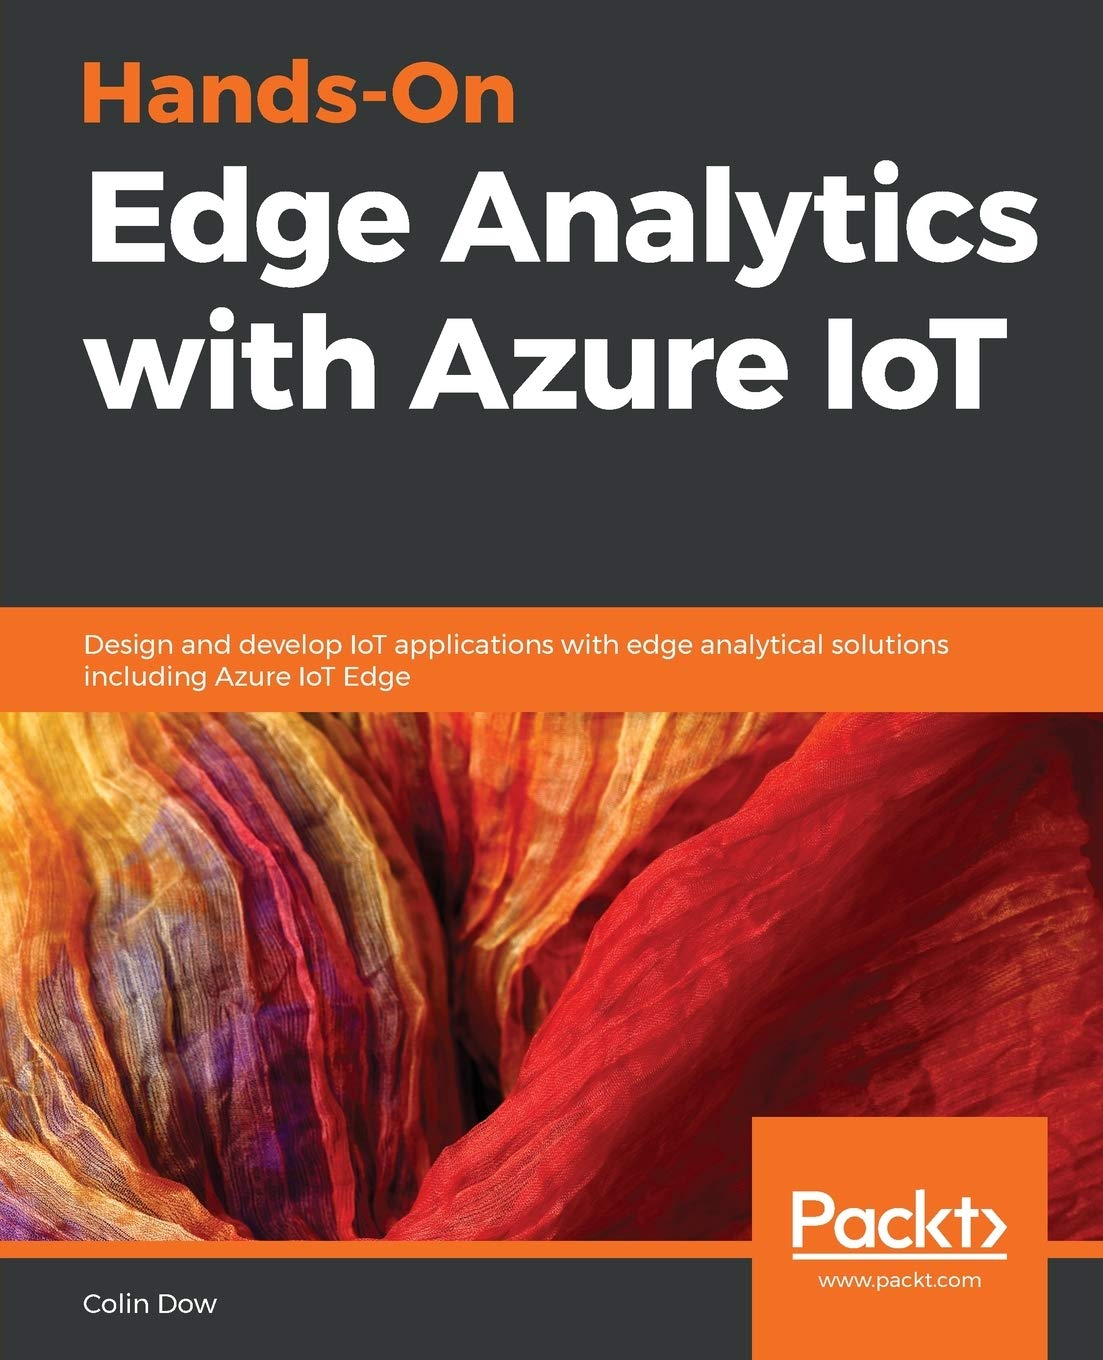 Hands-On Edge Analytics with Azure IoT: Design and develop IoT applications with edge analytical solutions including Azure IoT Edge